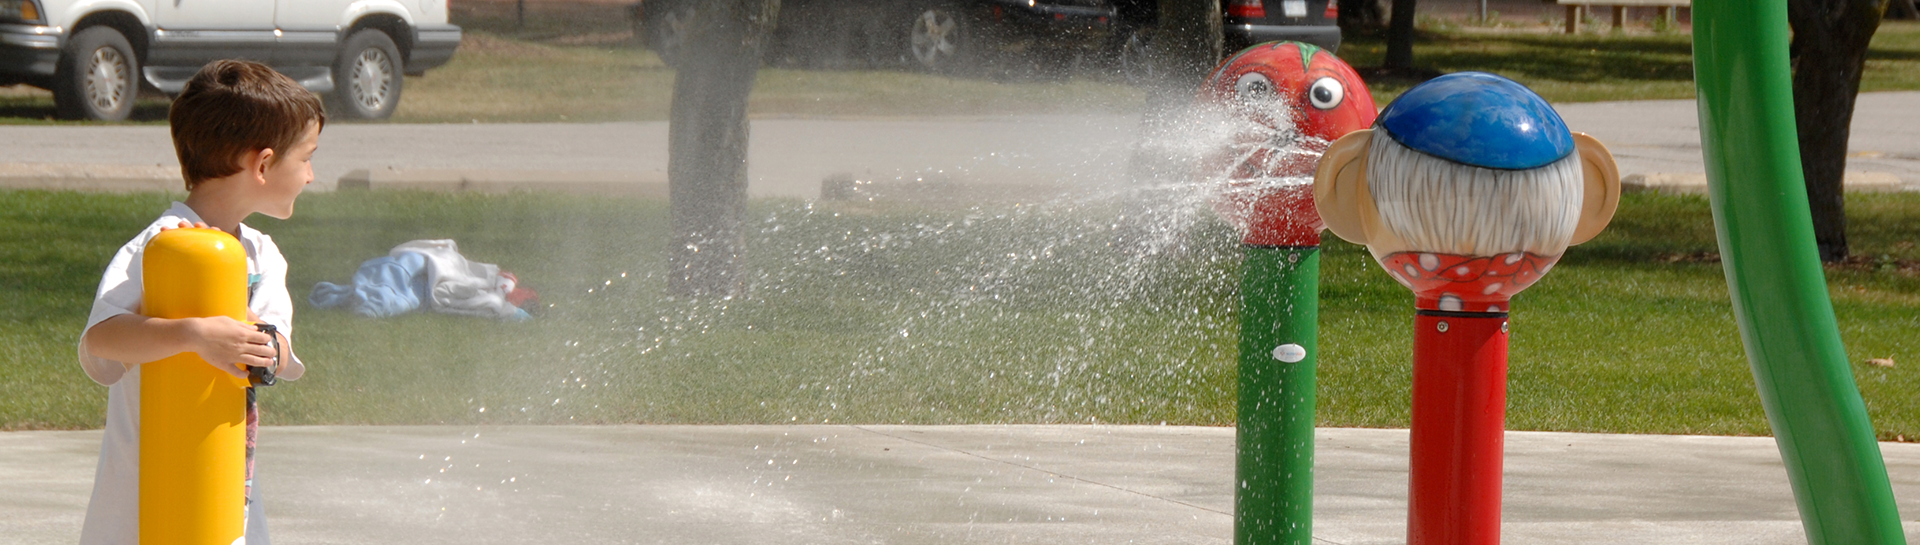 Water spurting out of splash pad equipment